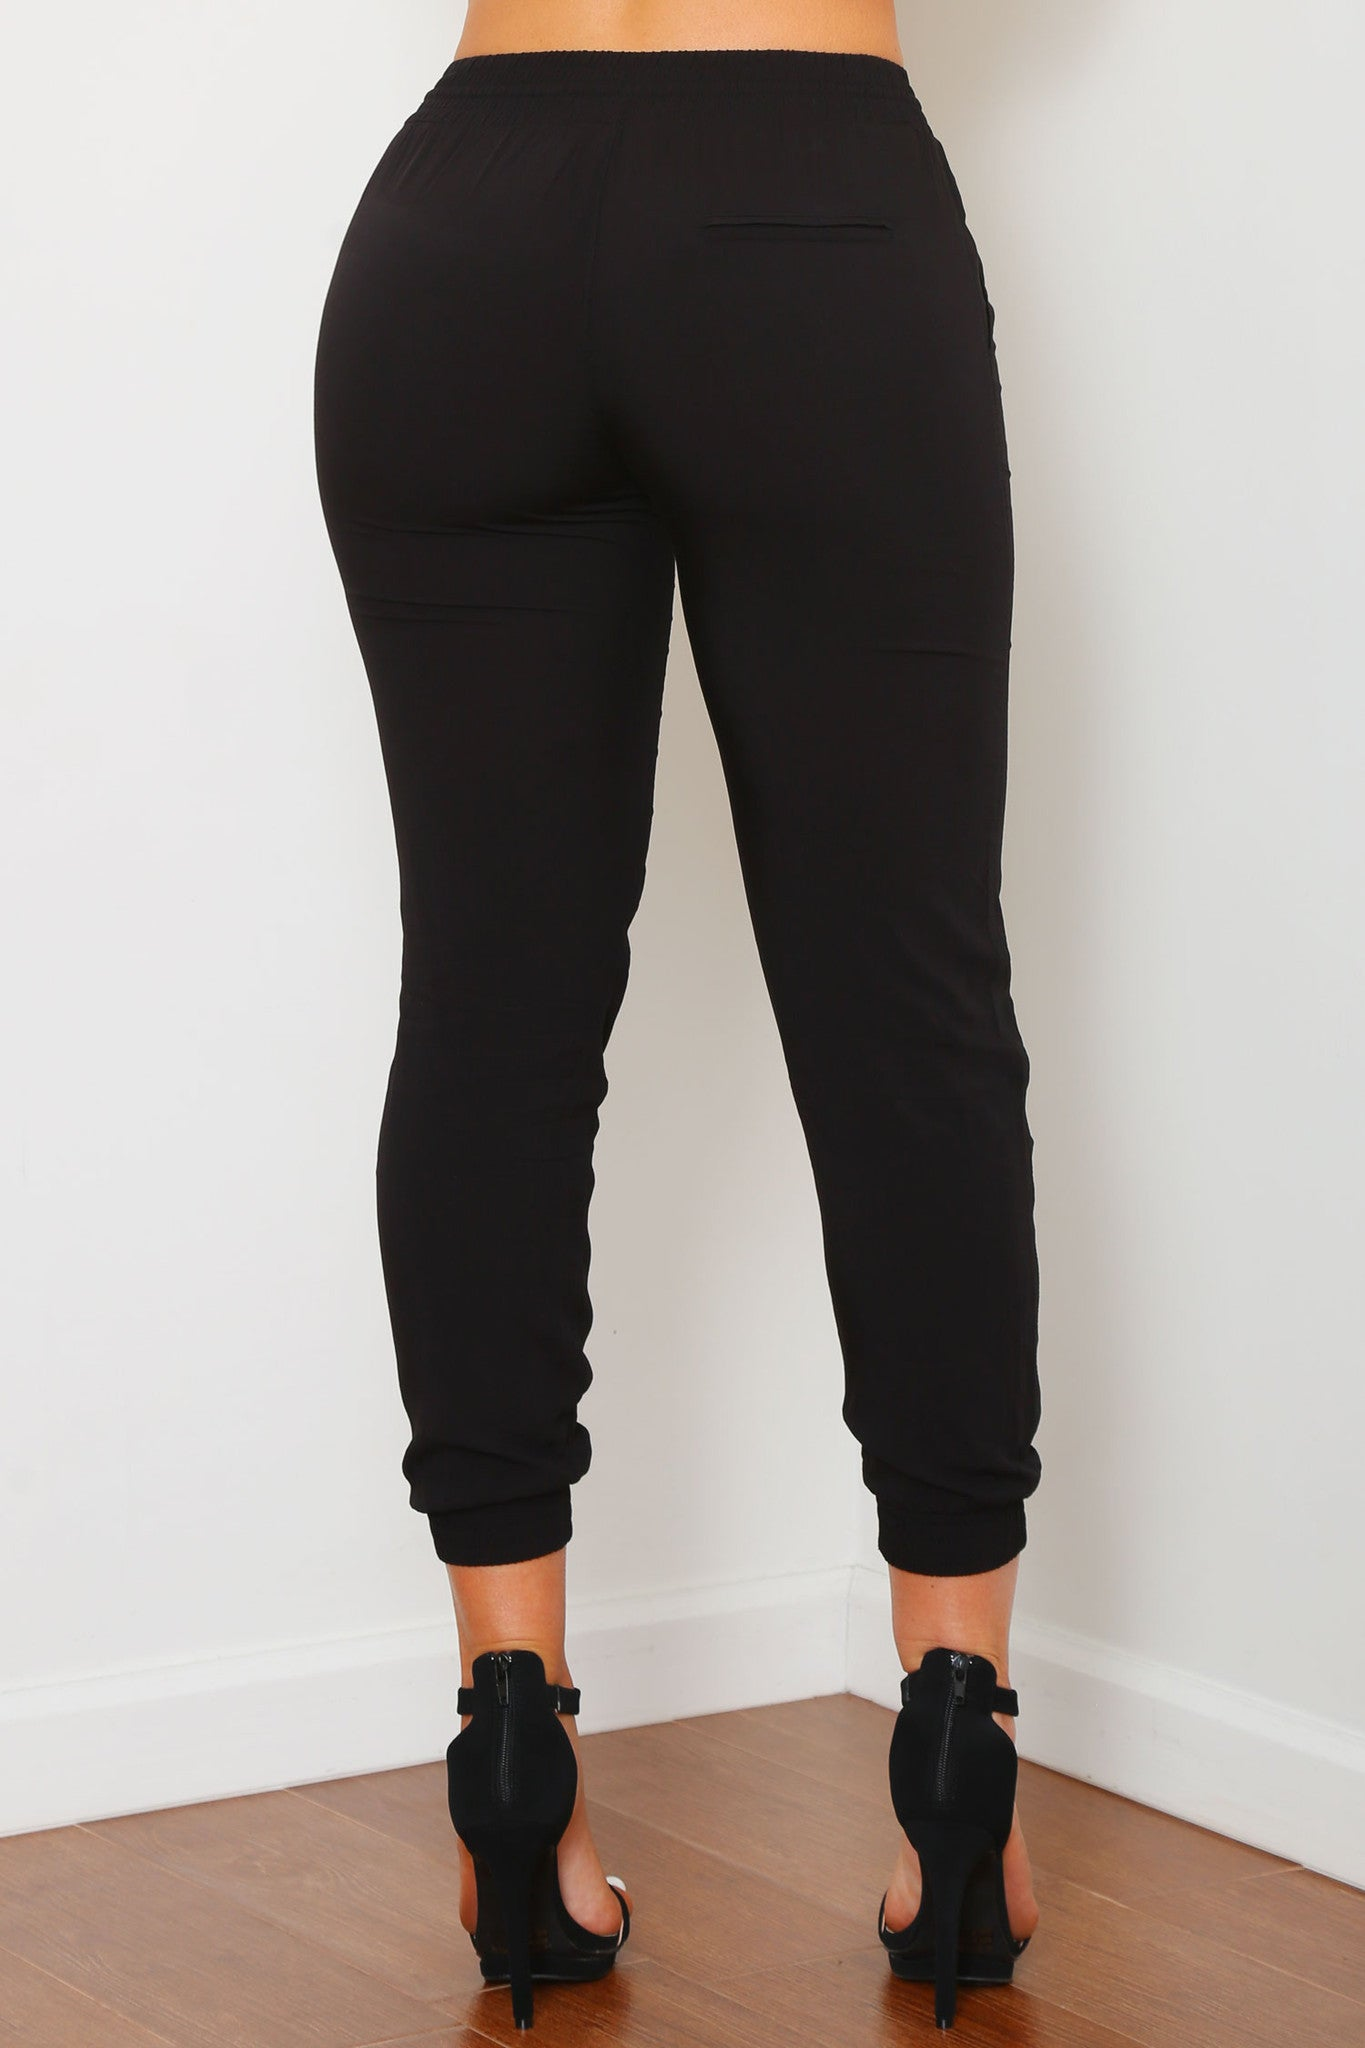 CANDY JOGGERS - Glam Envy - 3